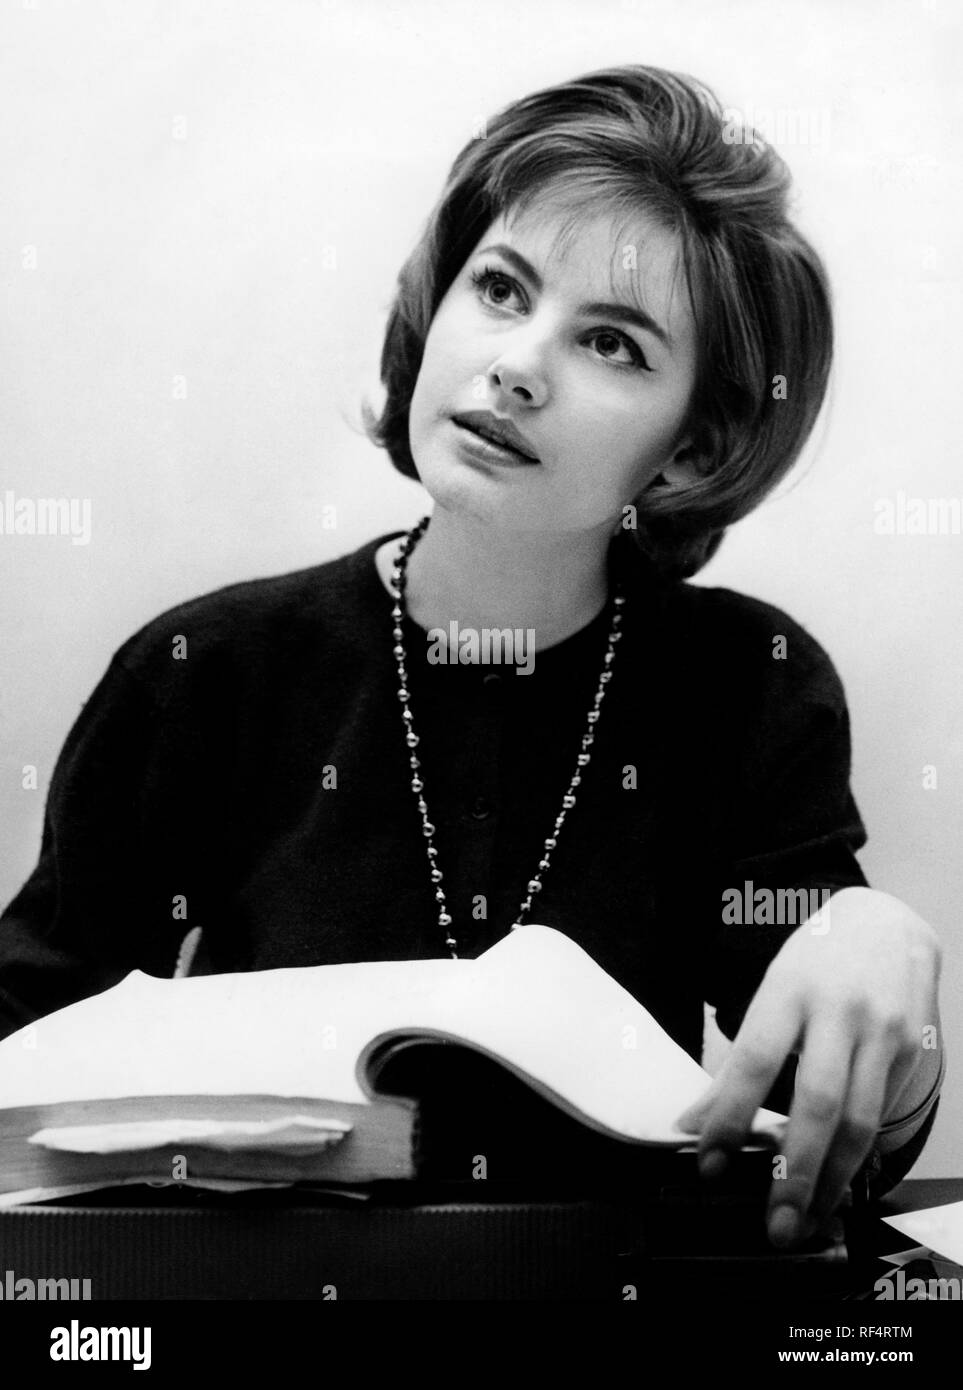 gabriella farinon, 1961 Stock Photo